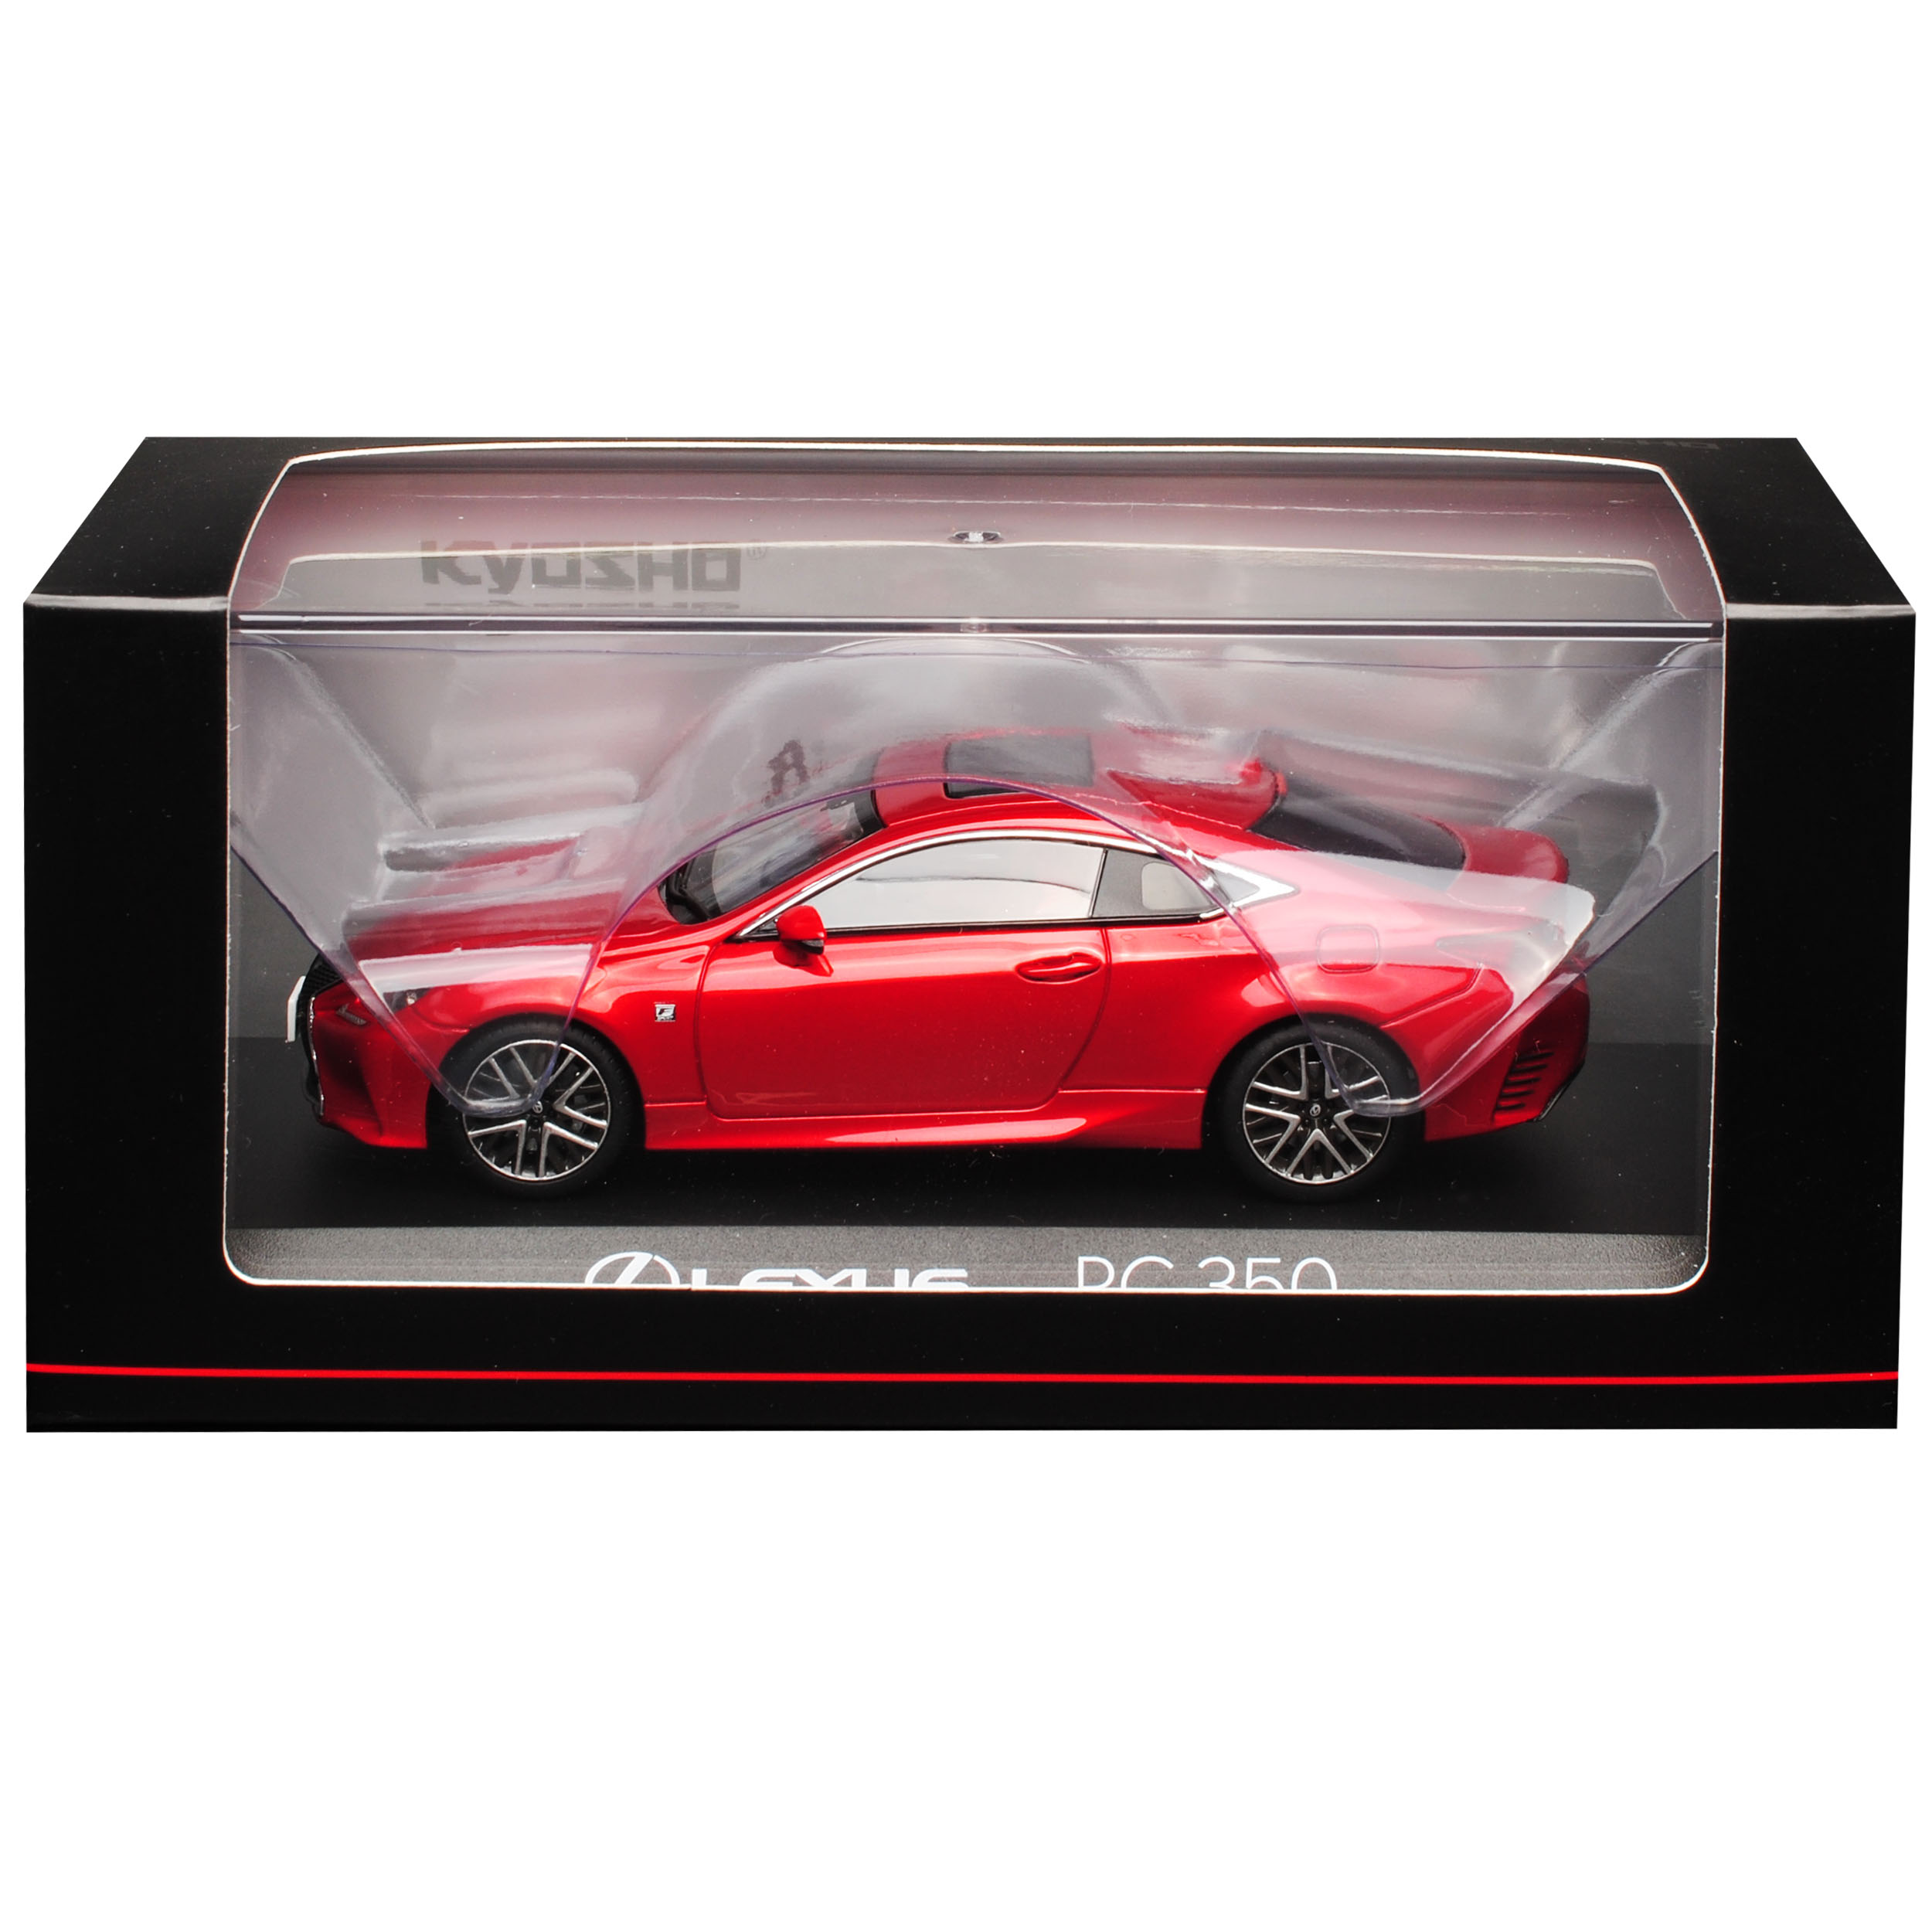 Lexus RC 350 F-Sport Coupe Radiant Rot CL Ab 2015 1//43 Kyosho Modell Auto mit ..